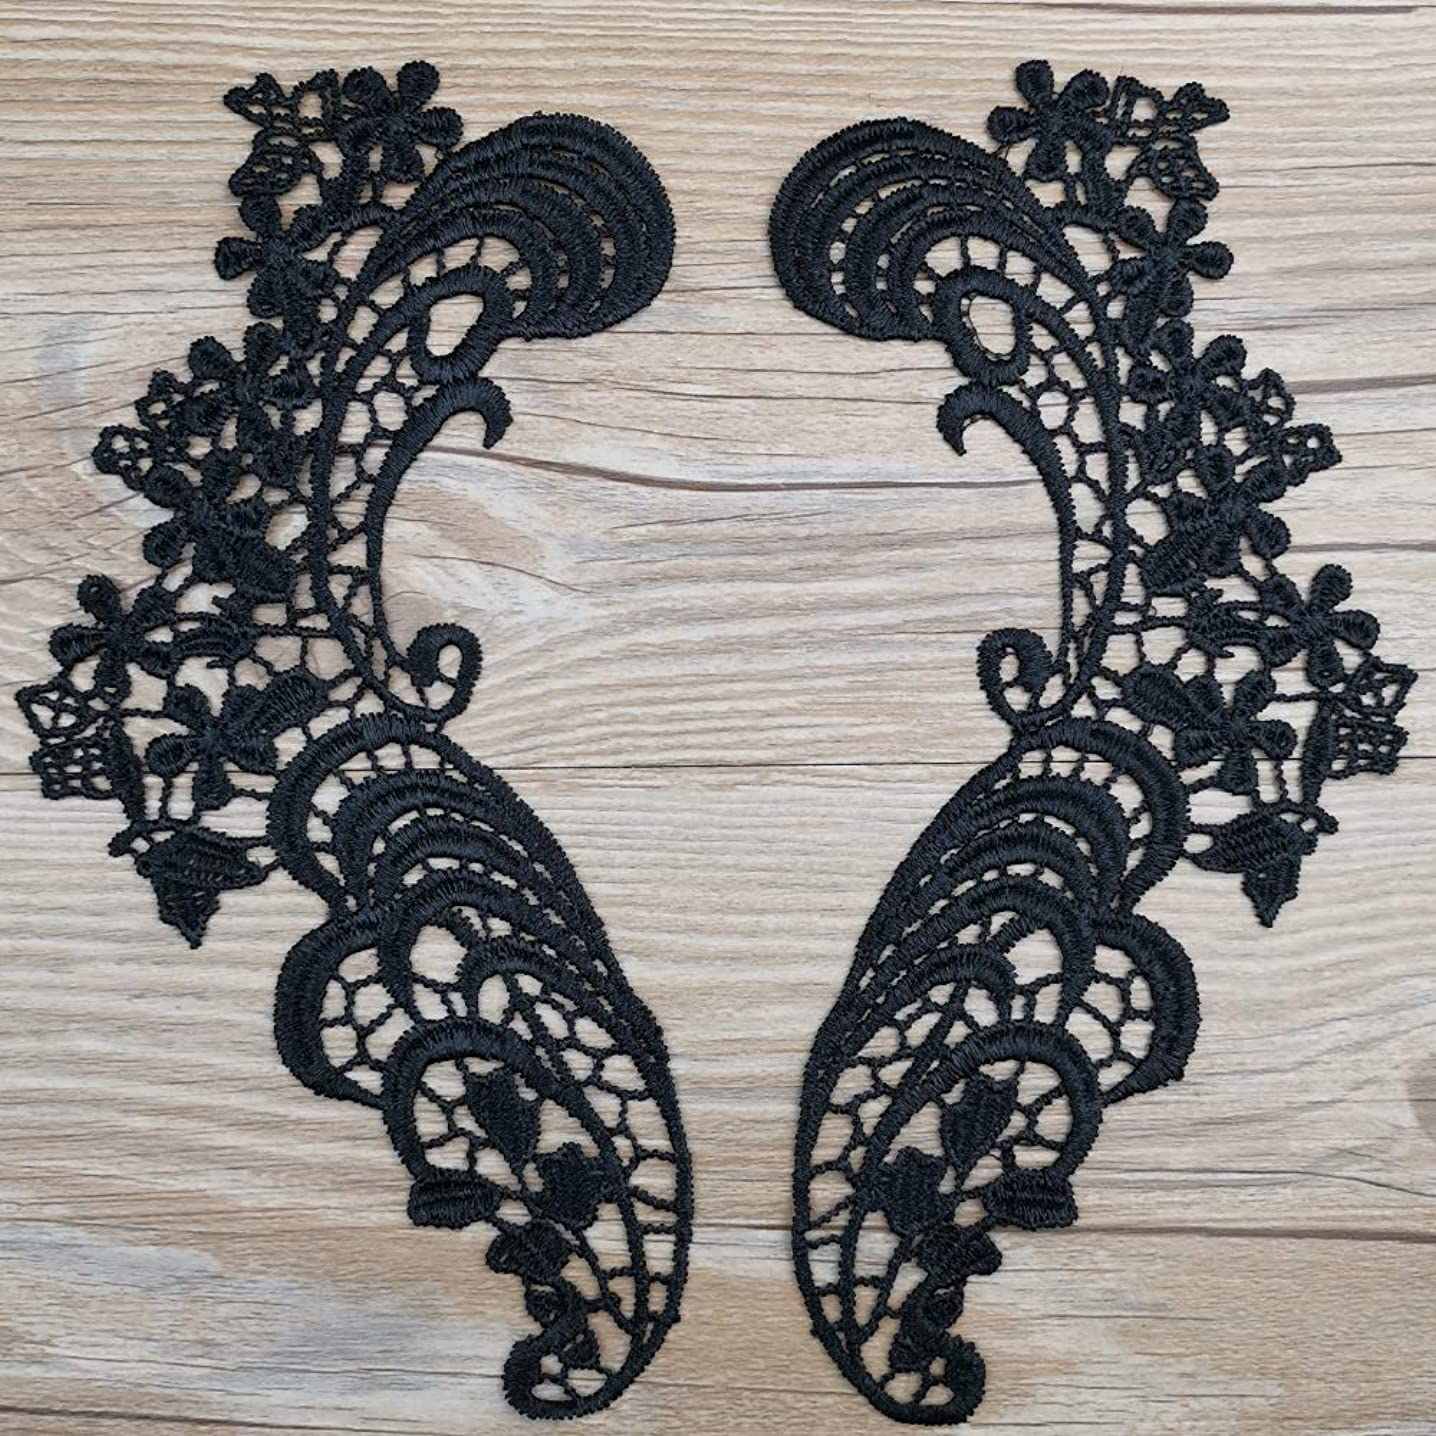 1 Pair Black Clothing Lace Flower Applique Headdress Hair Accessories Flowers Collar Patch DIY Accessories